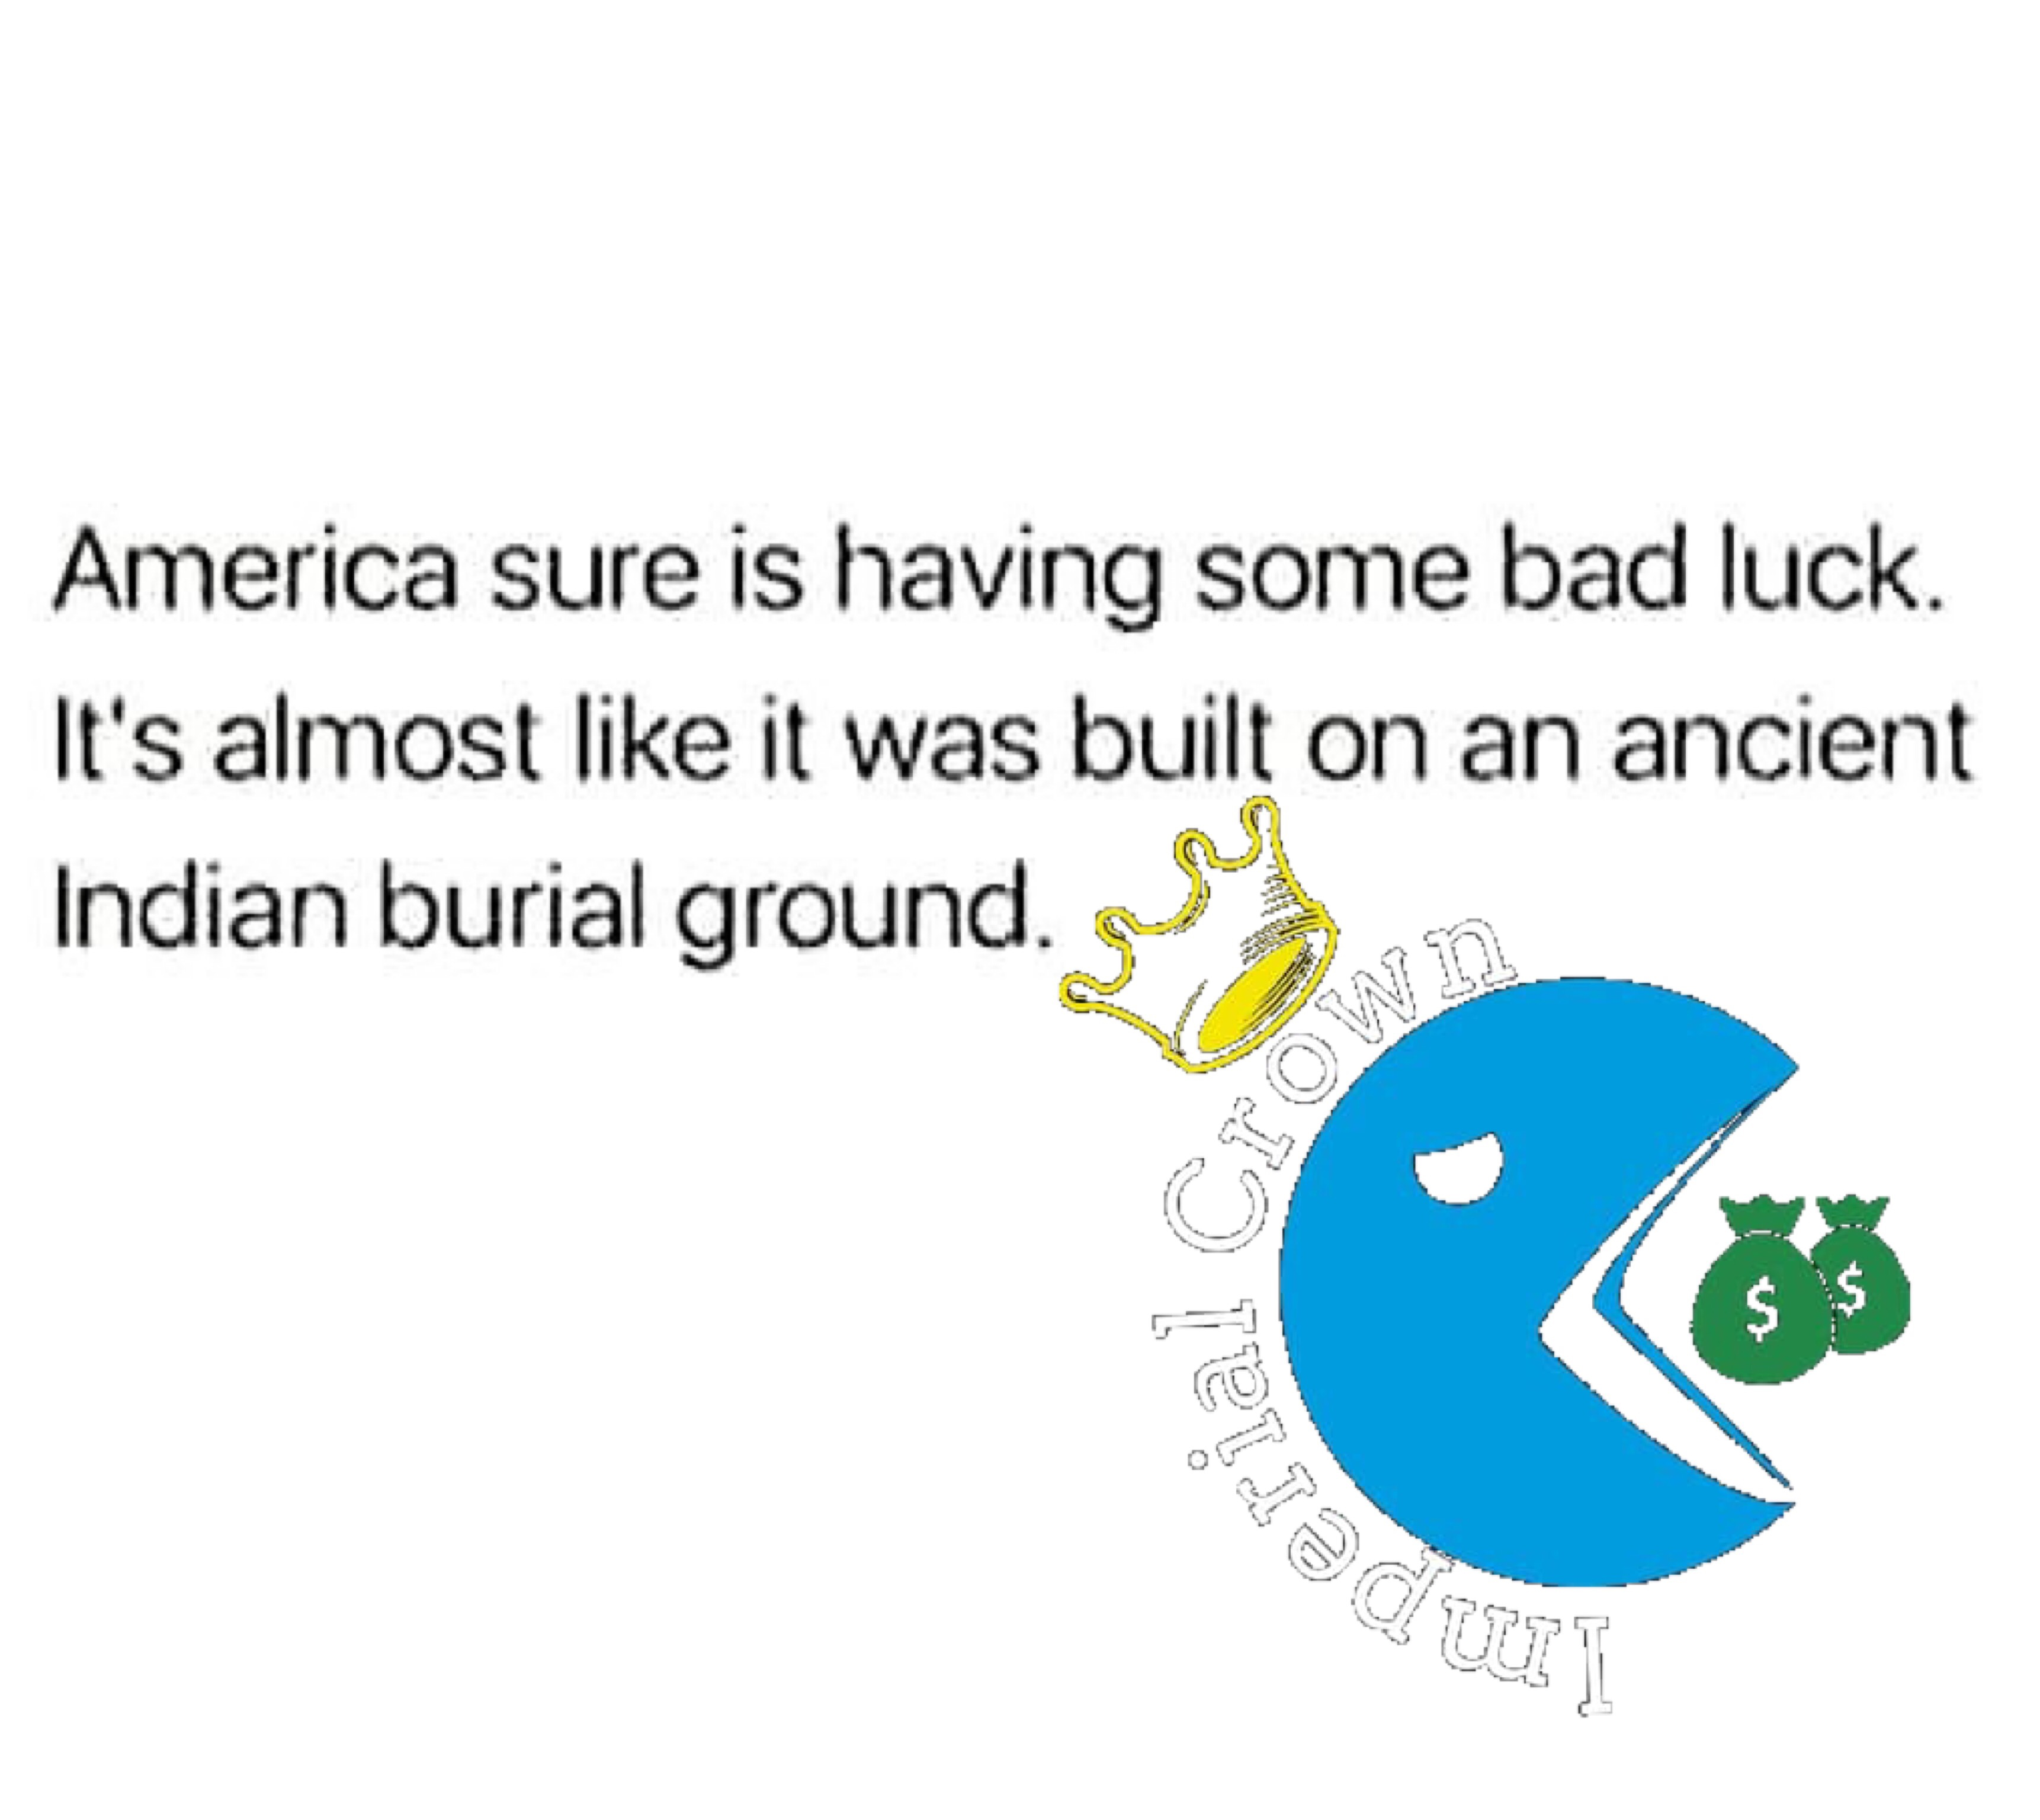 America sure is having some bad luck it's almost like it was built on an ancient Indian burial ground